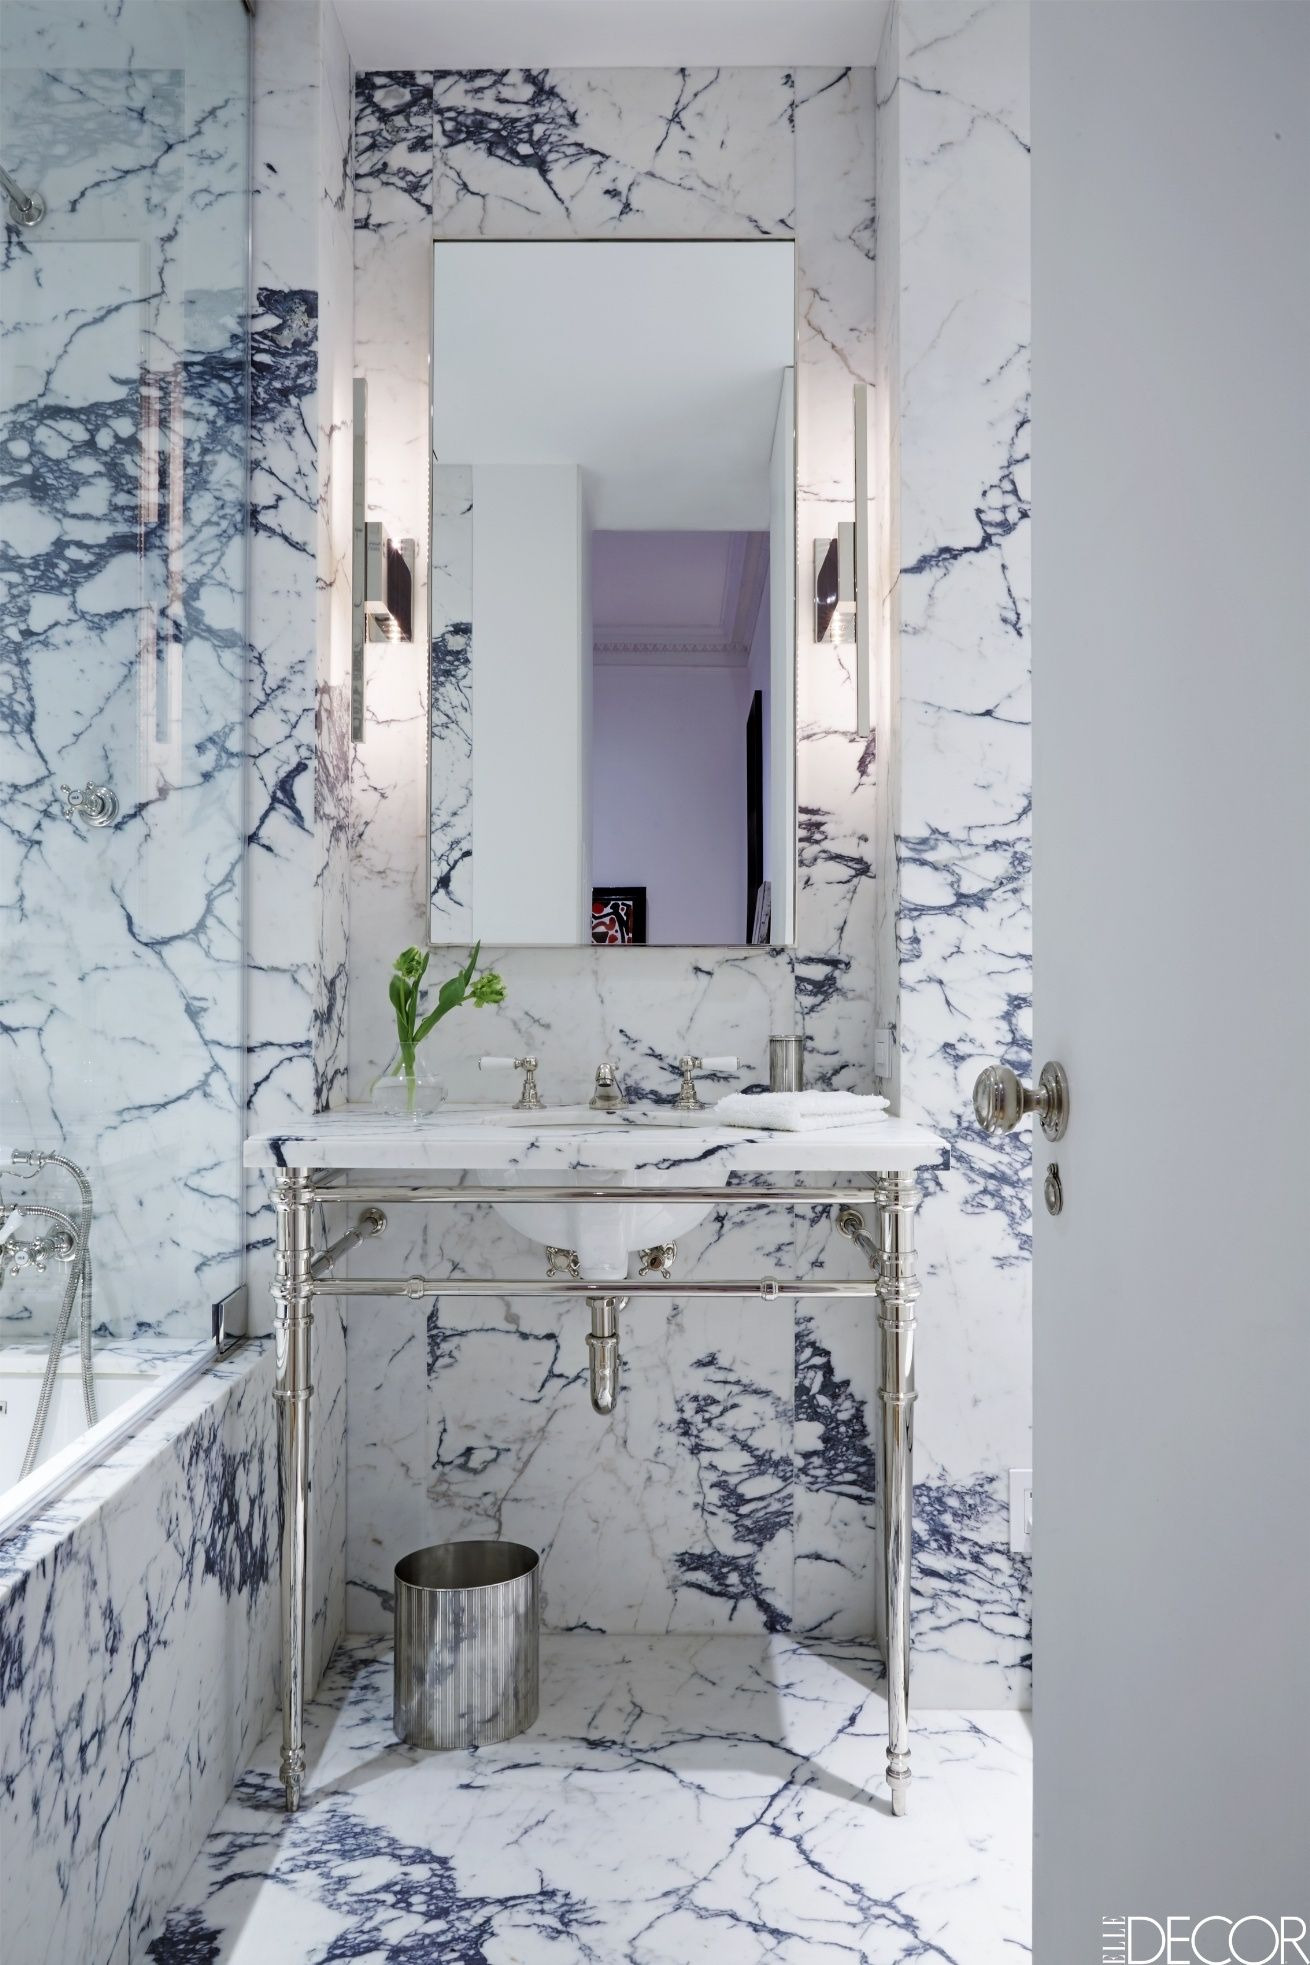 How to Decorate A Small Bathroom Elegant Small Bathrooms Design Ideas 2020 How to Decorate Small